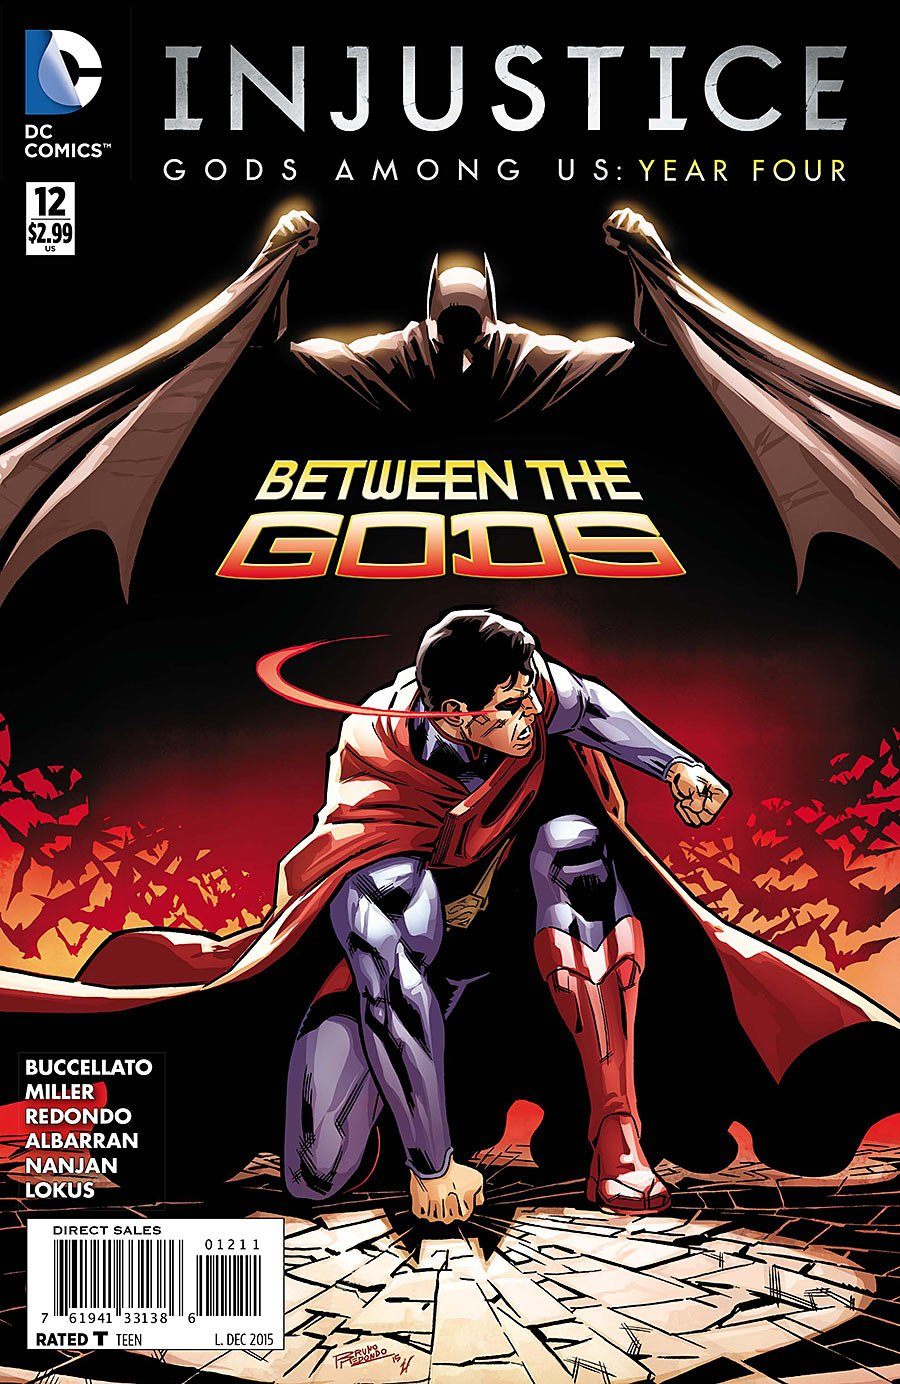 Injustice - Gods Among Us: Year Four 012 (December 2015)